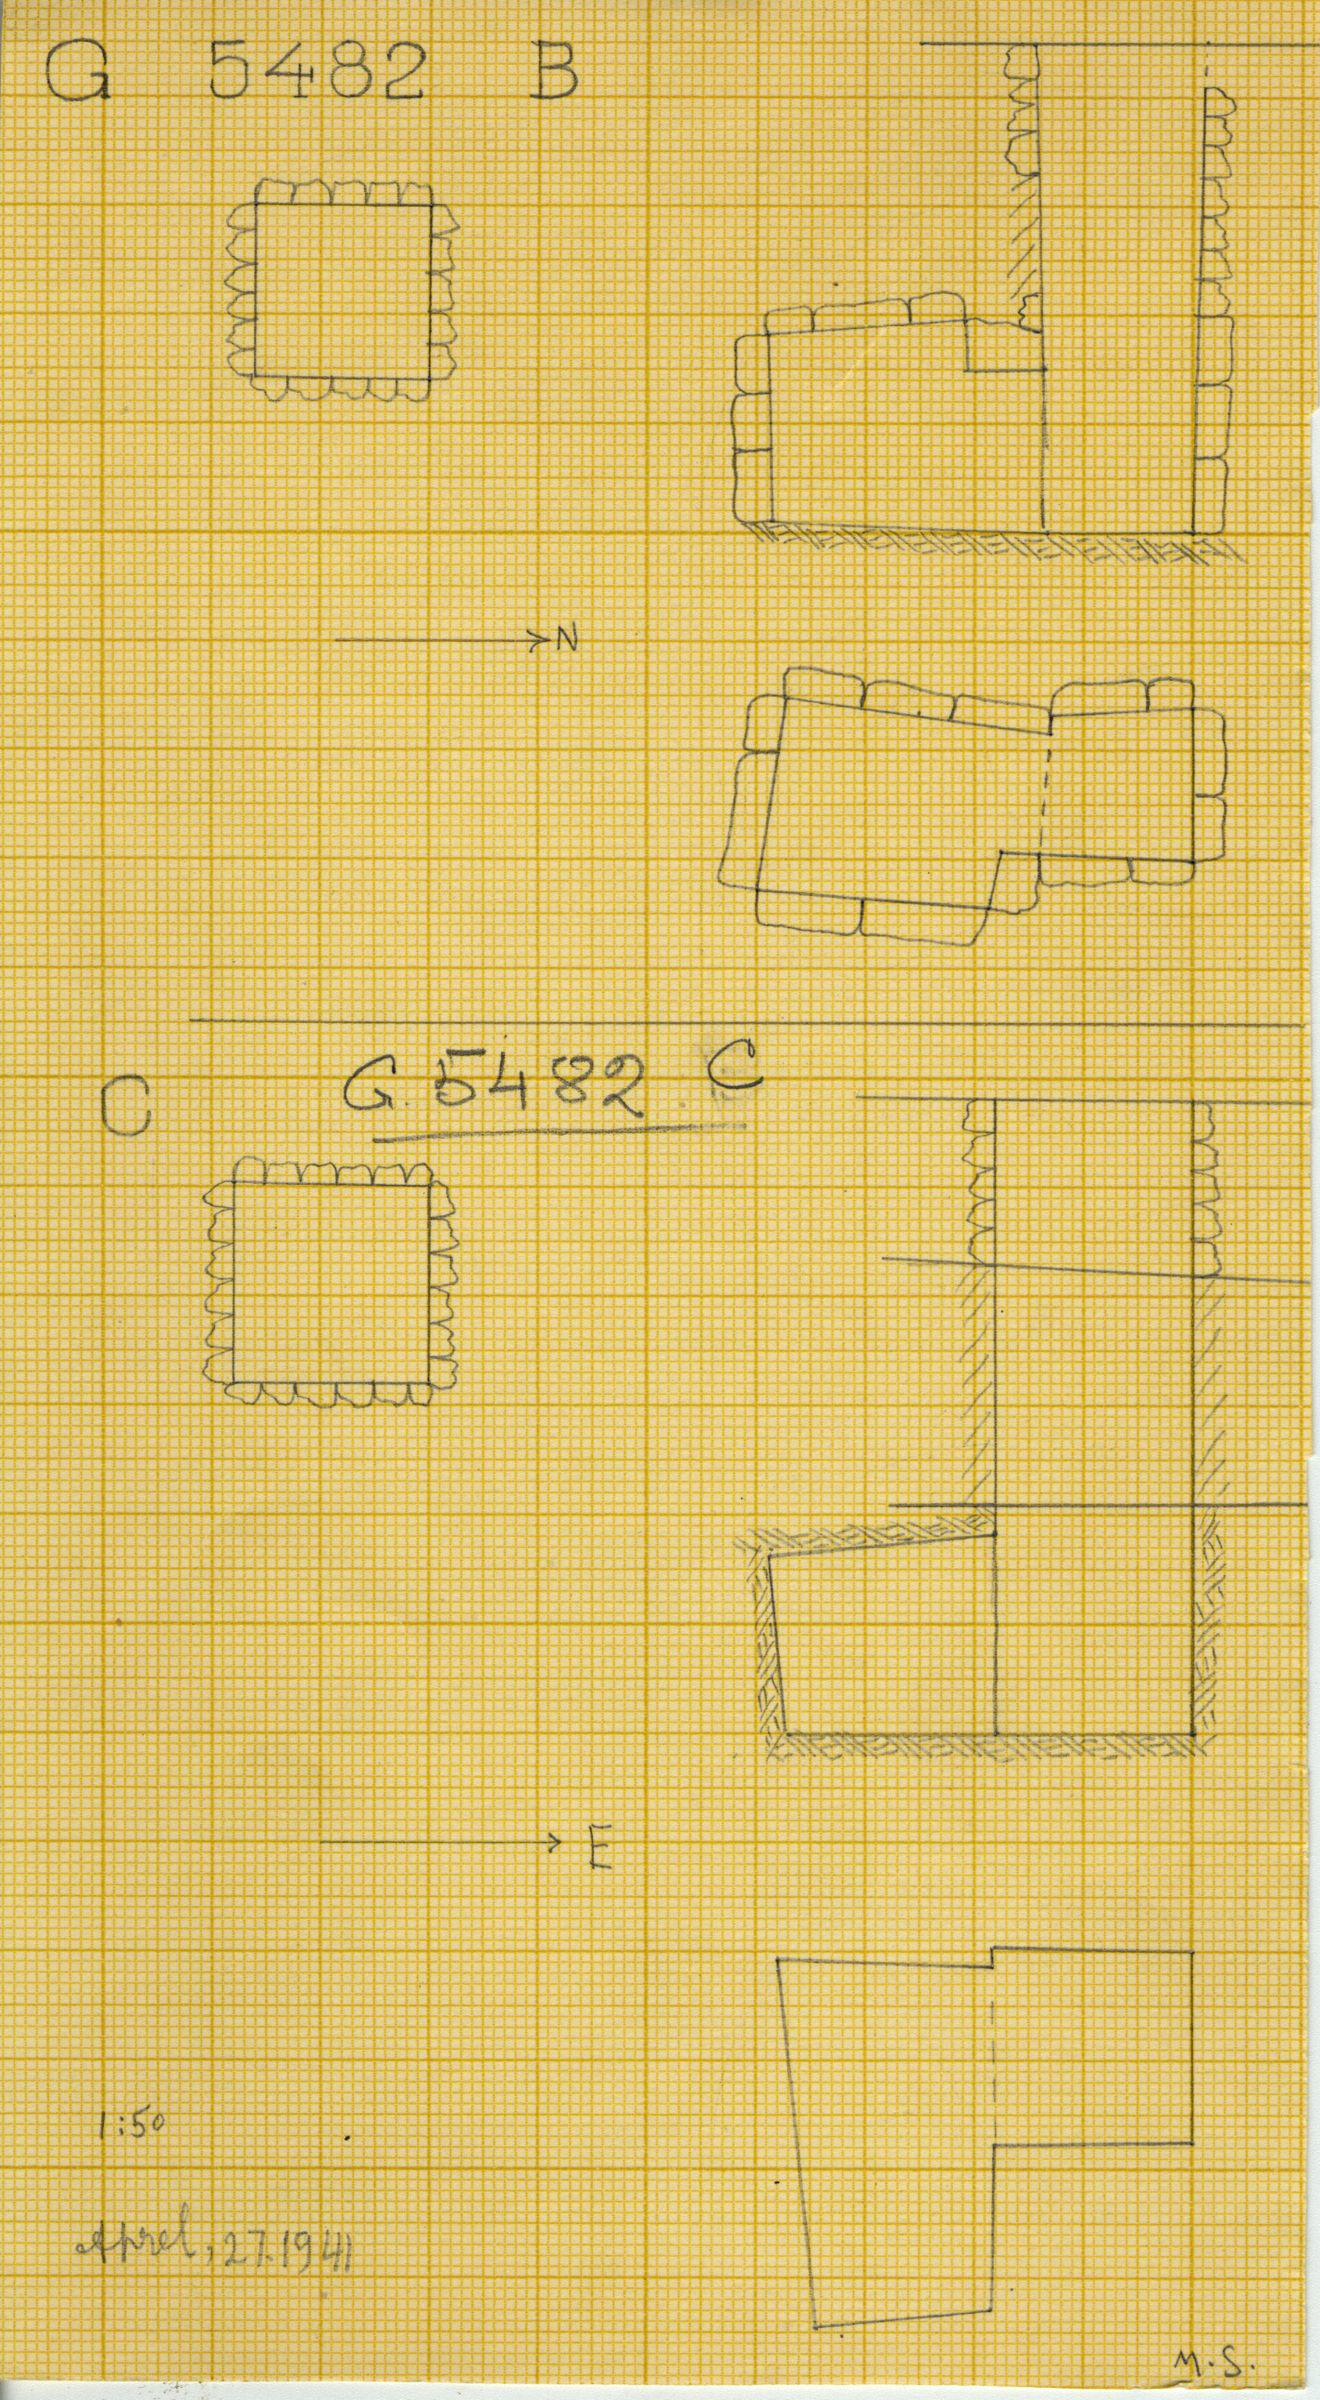 Maps and plans: G 5482, Shaft B and C